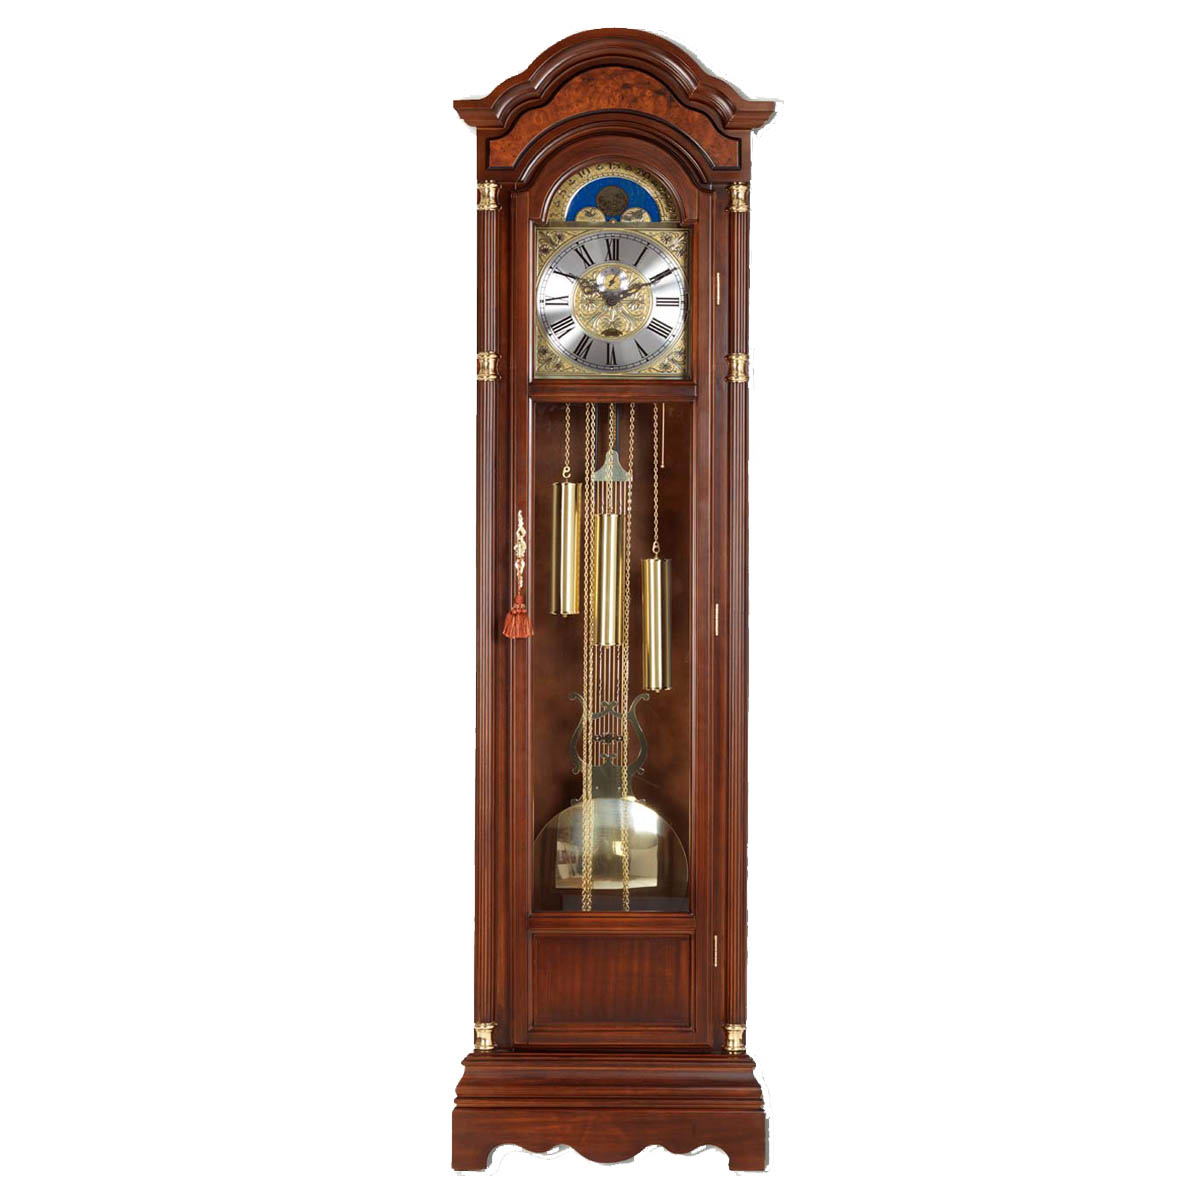 REMINGTON Grandfather Floor Clock